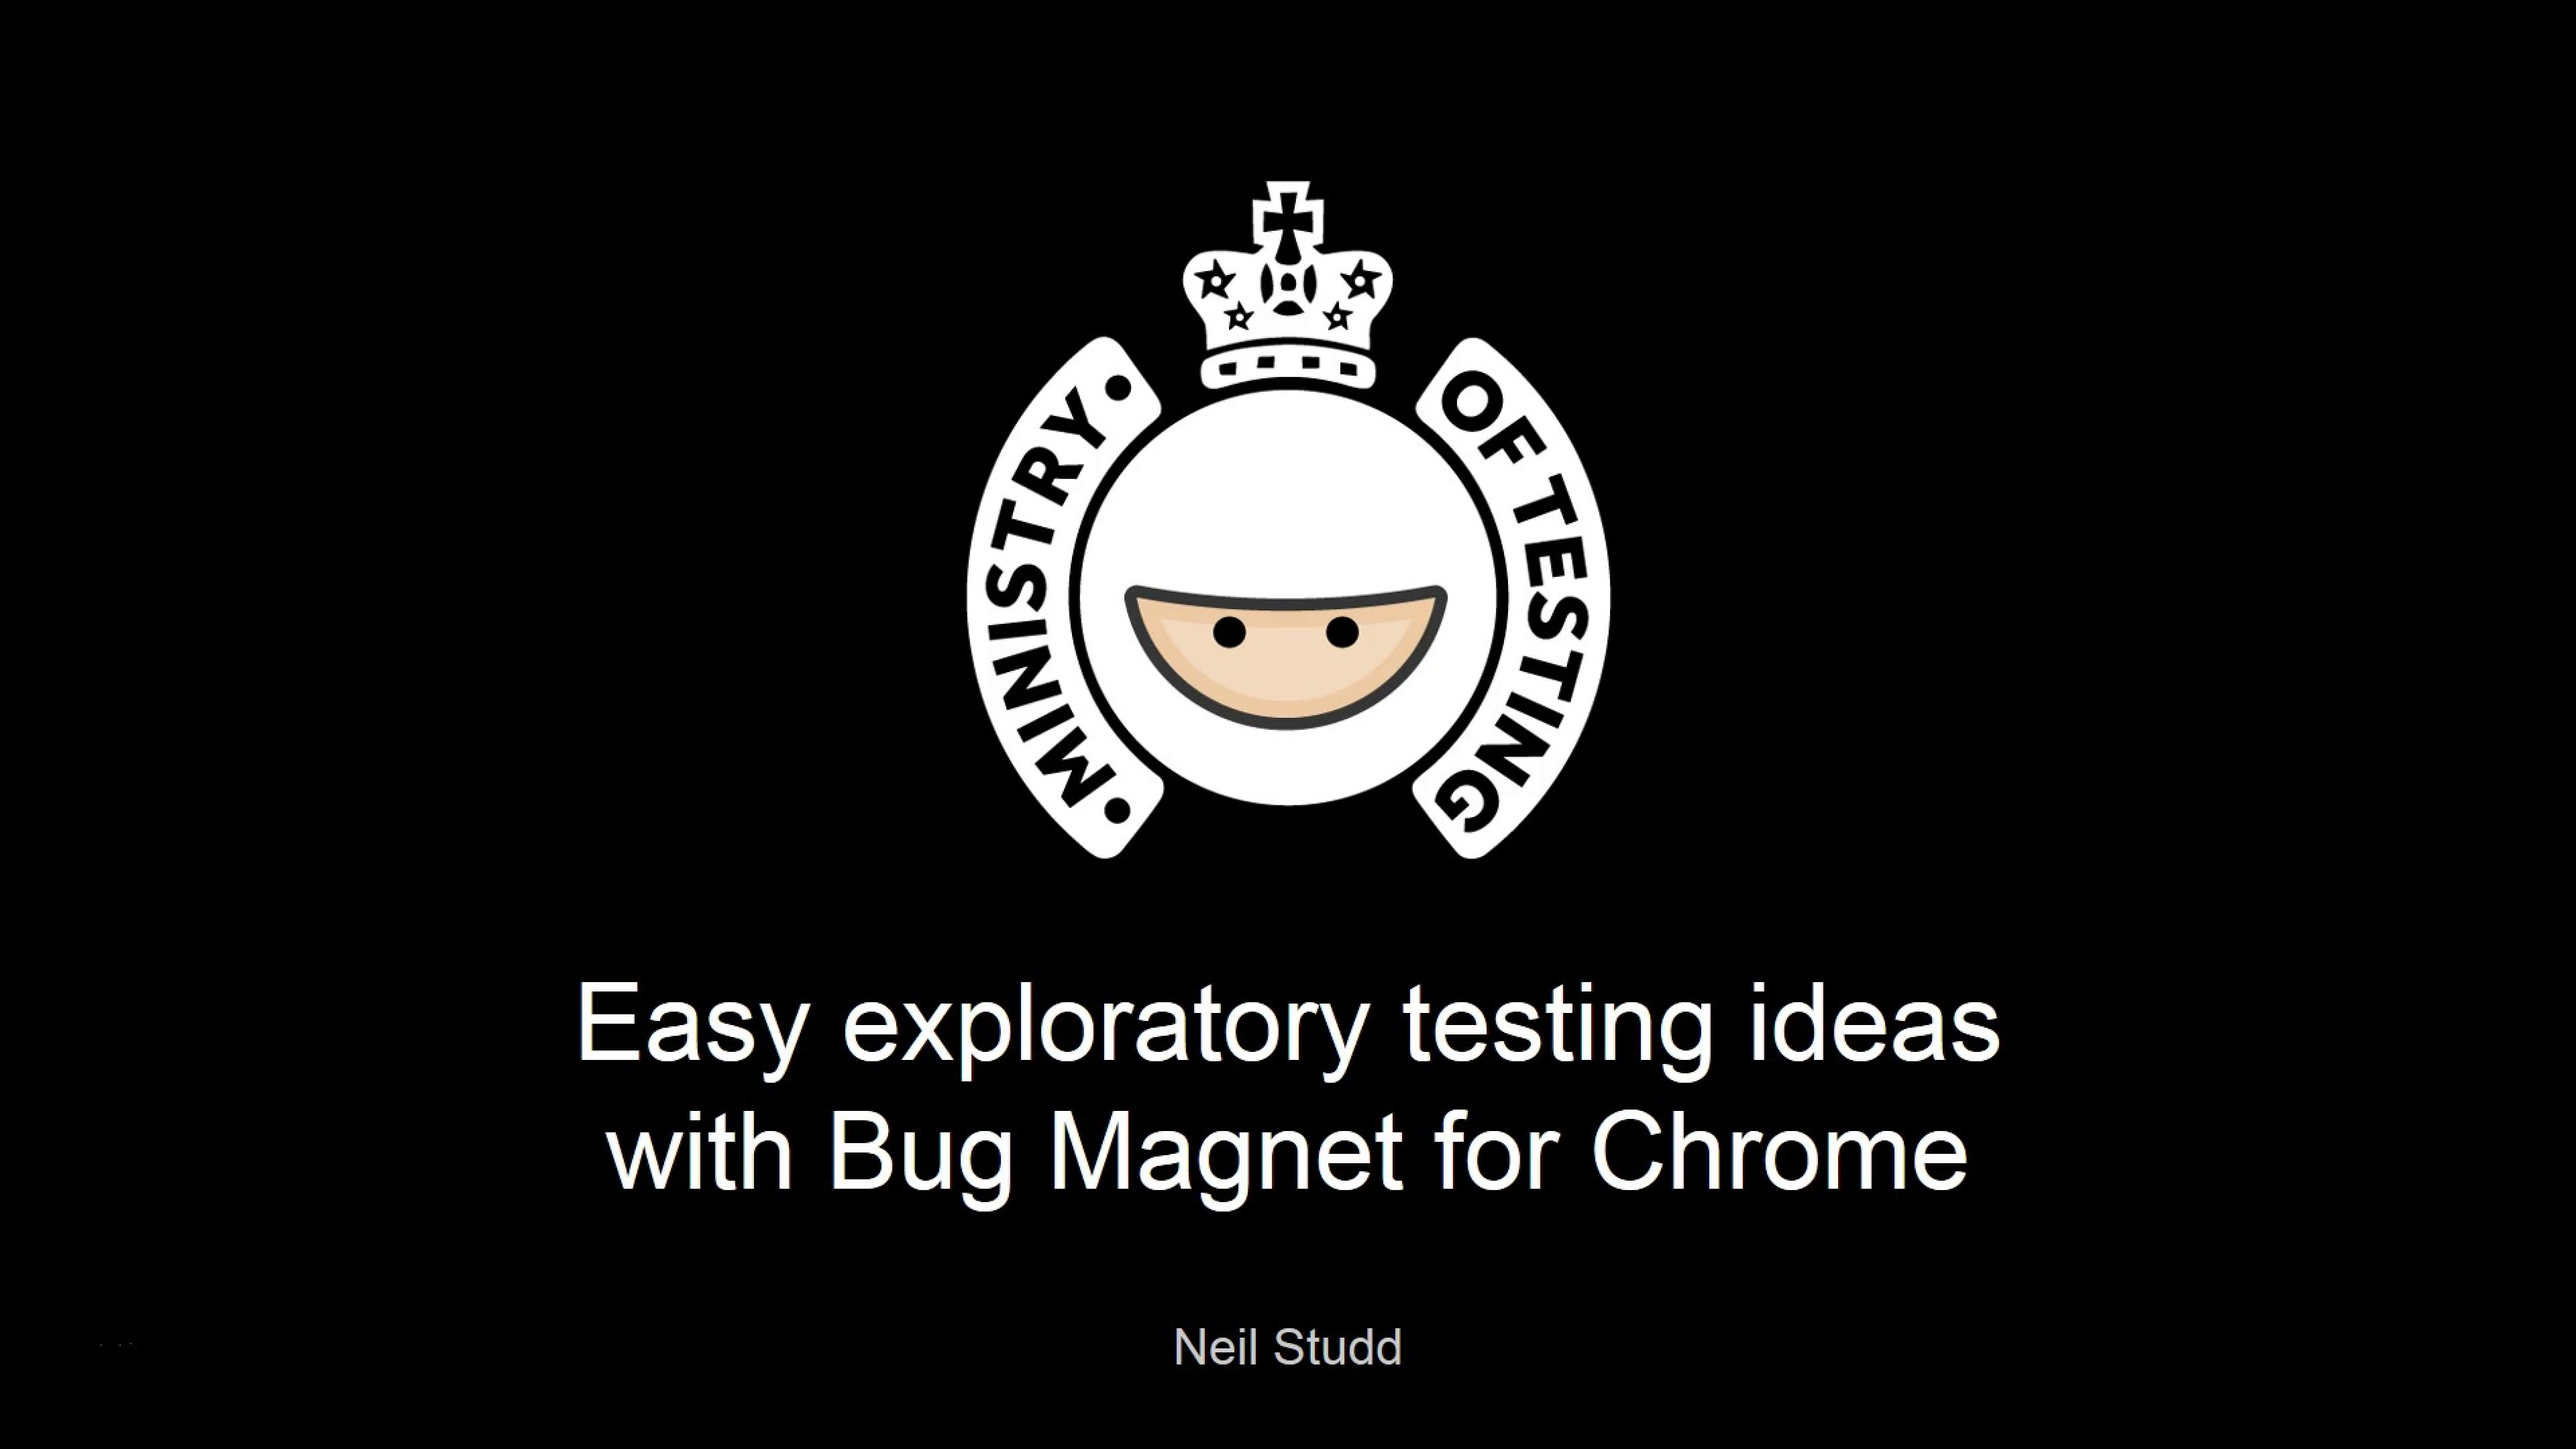 Easy Exploratory Testing Ideas with Bug Magnet - Neil Studd